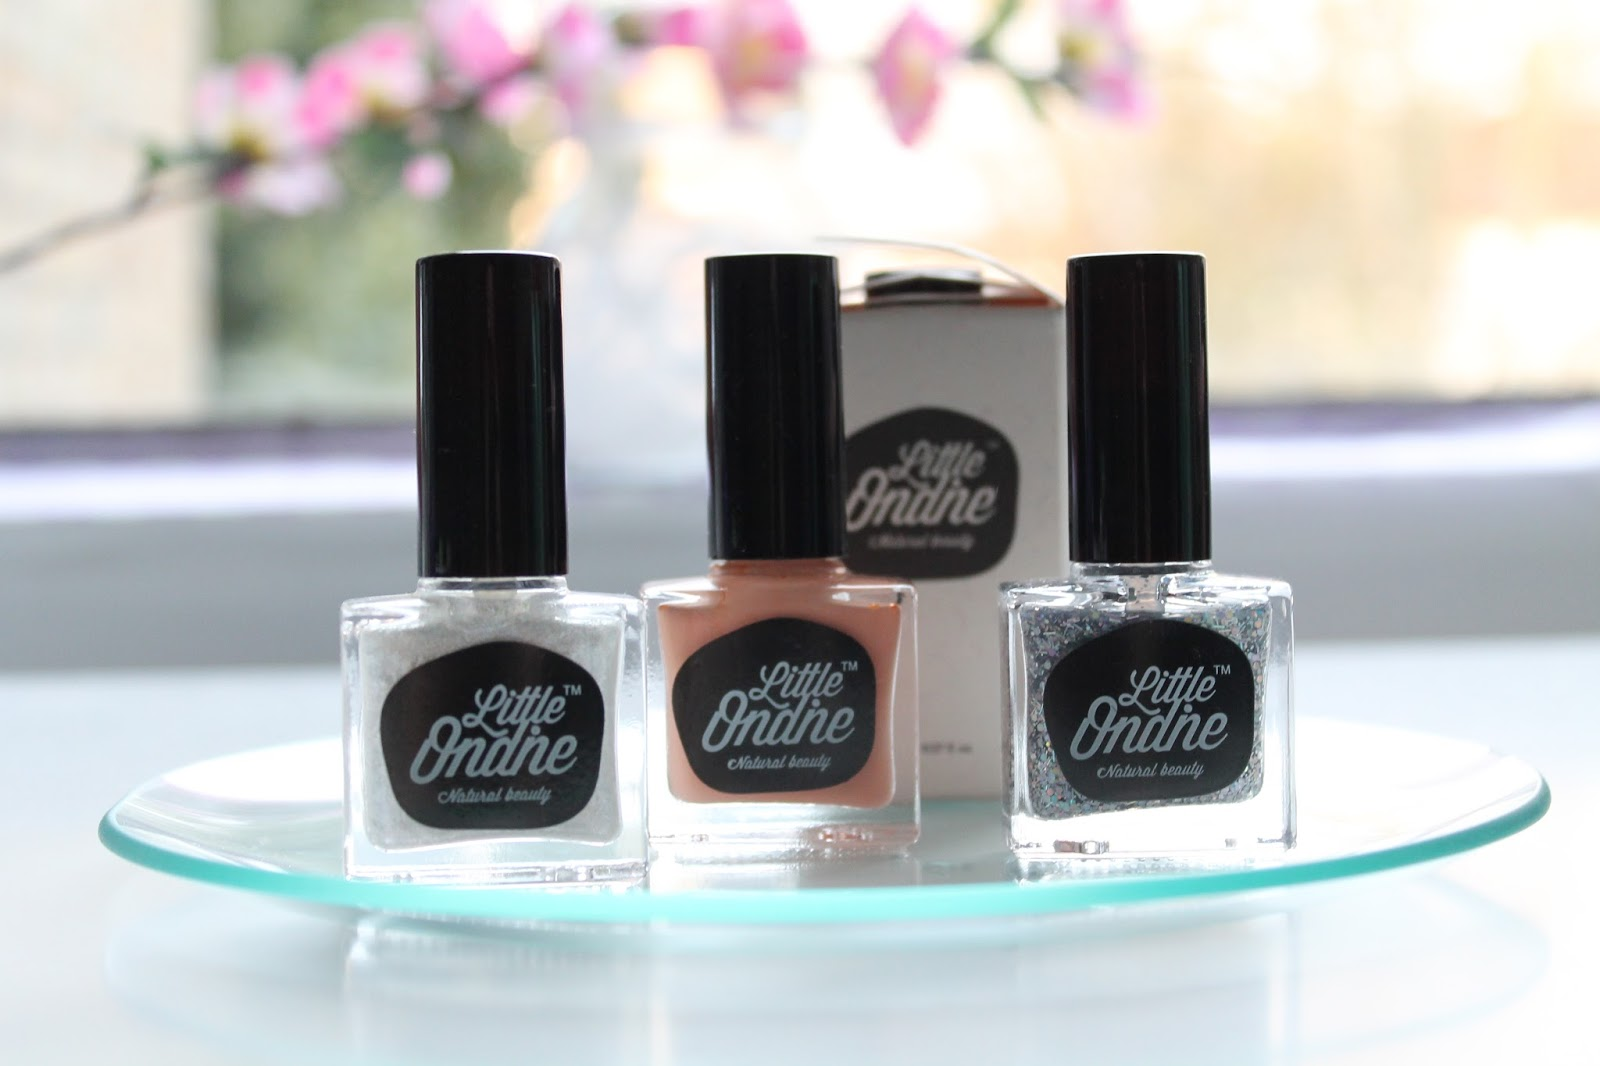 Little Ondine Water Based Nail Polish | Naturally Diddy - UK beauty ...